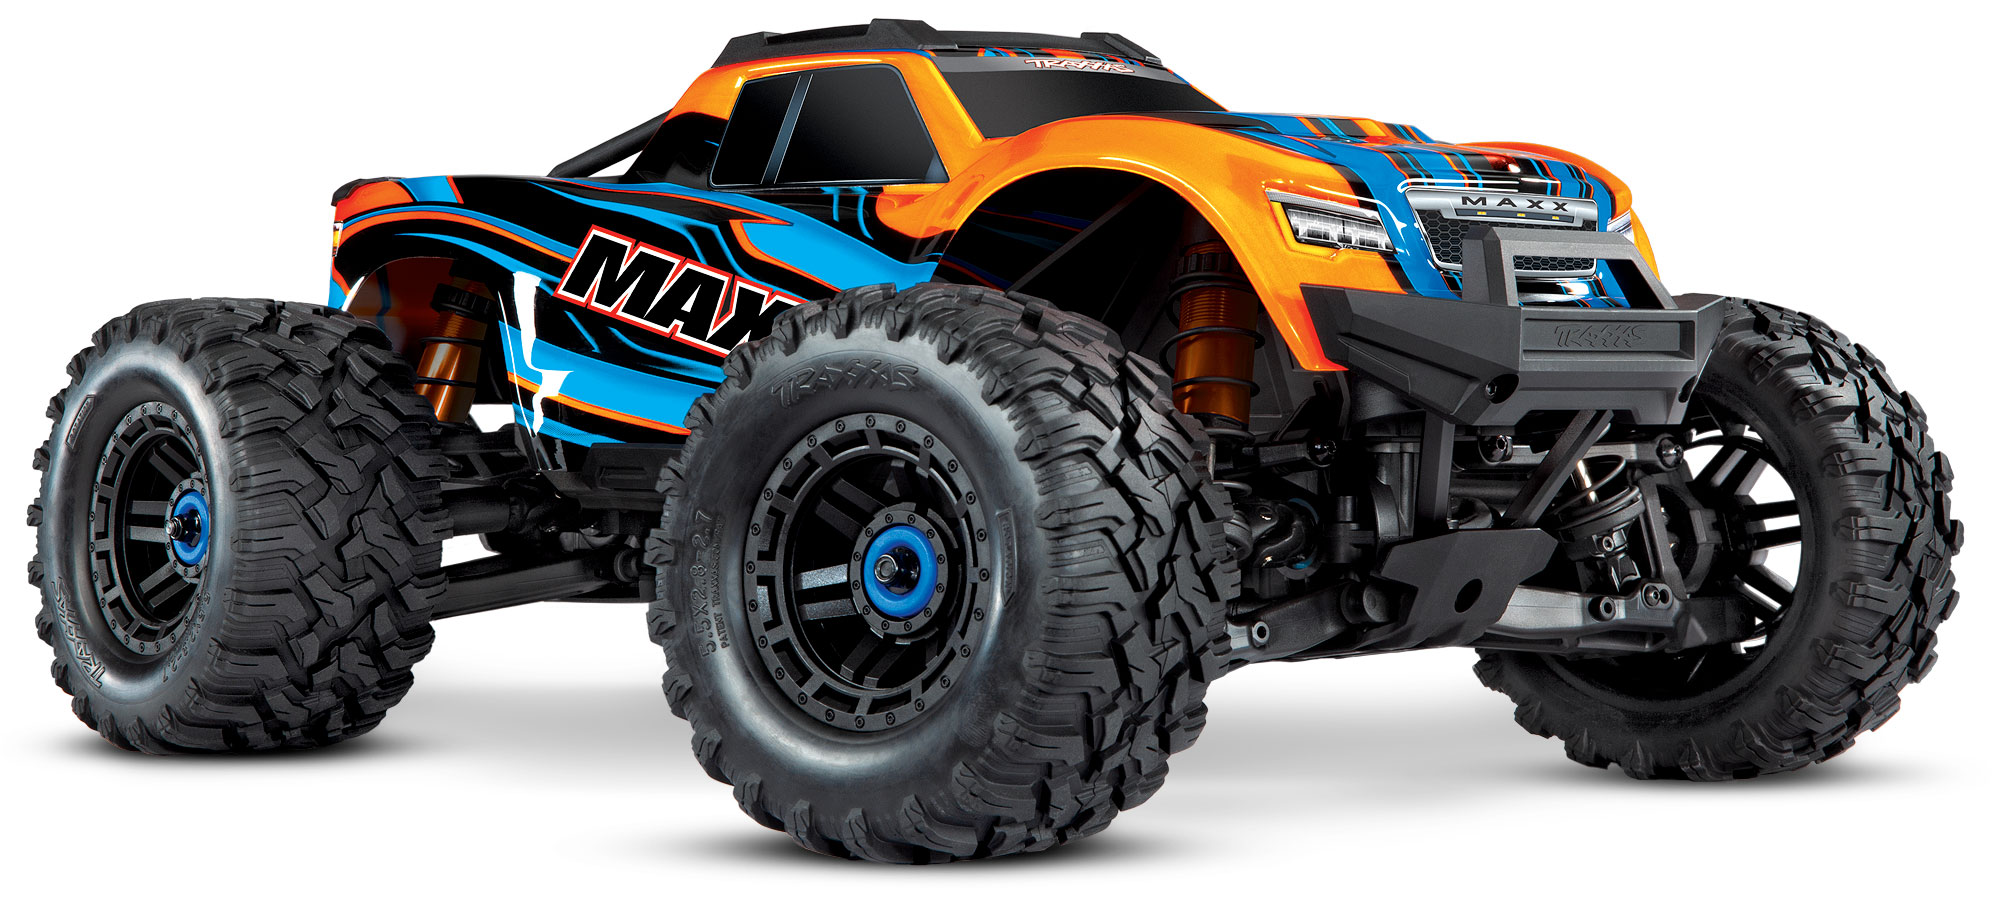 THE NEW MAXX® TRAXXAS